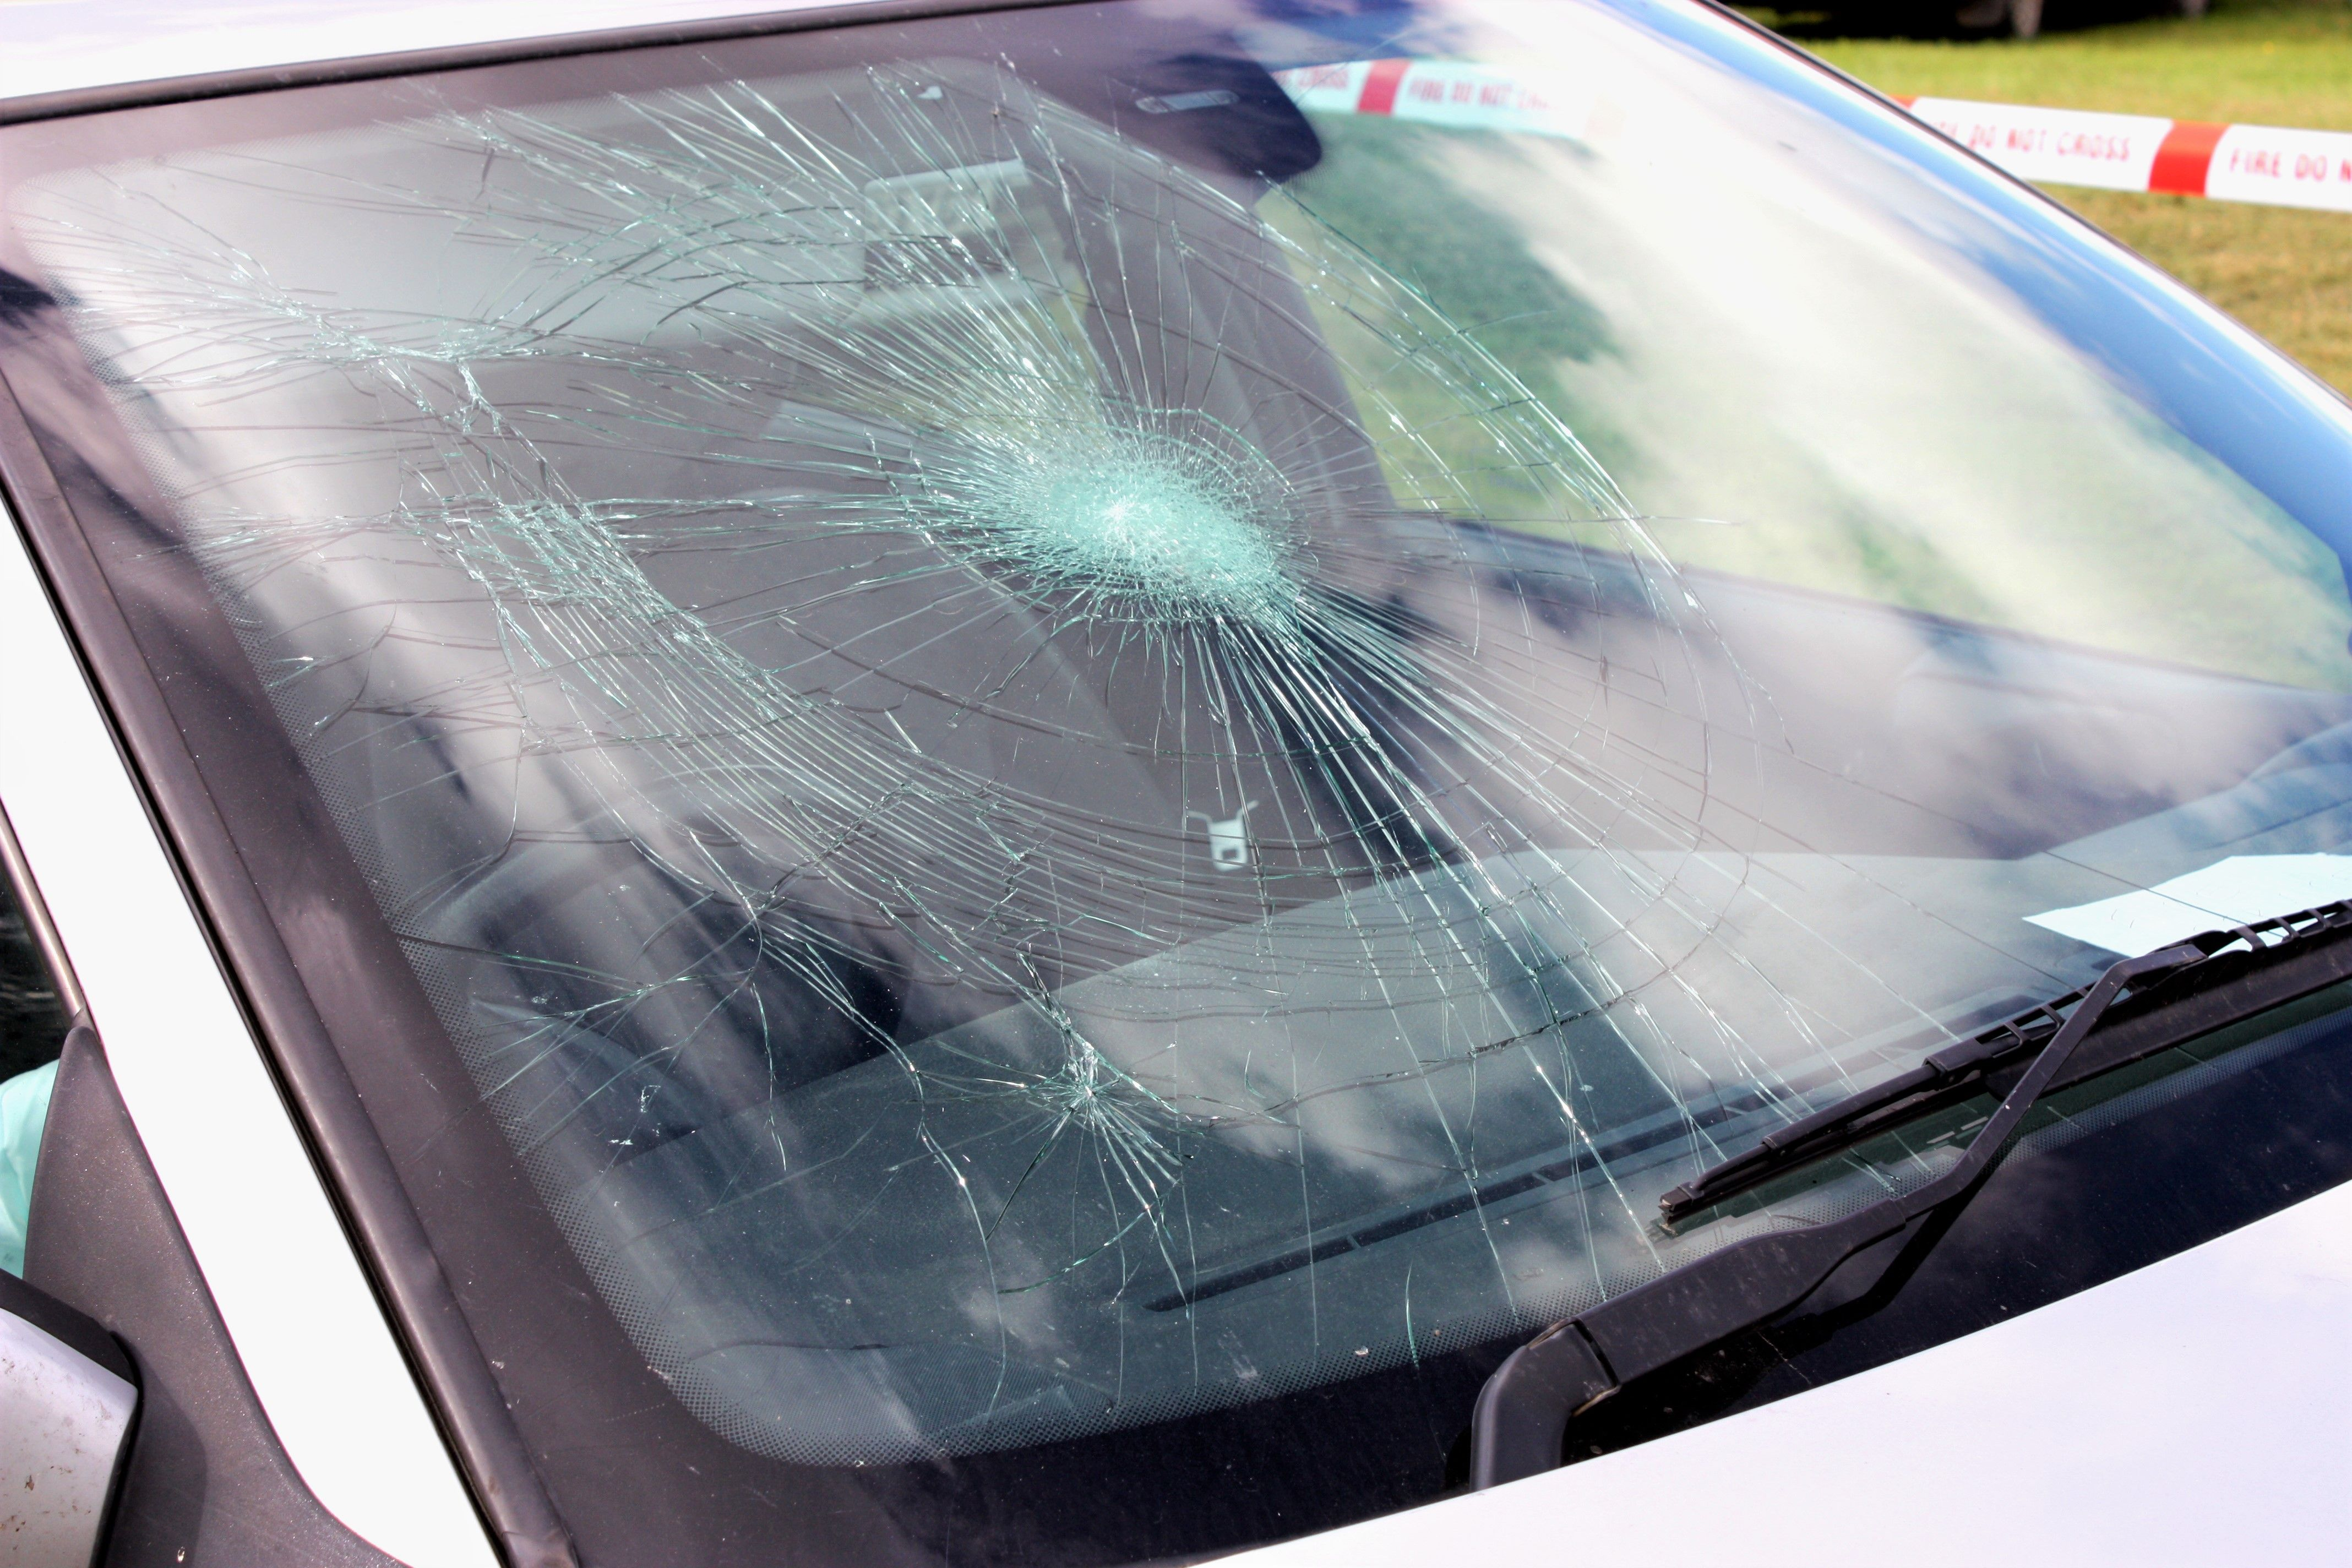 Oklahoma Boy 12 Helps Save Toddler Locked In Hot Car By Breaking Windshield With Ratchet Strap Auto Glass Repair Windshield Repair Auto Glass